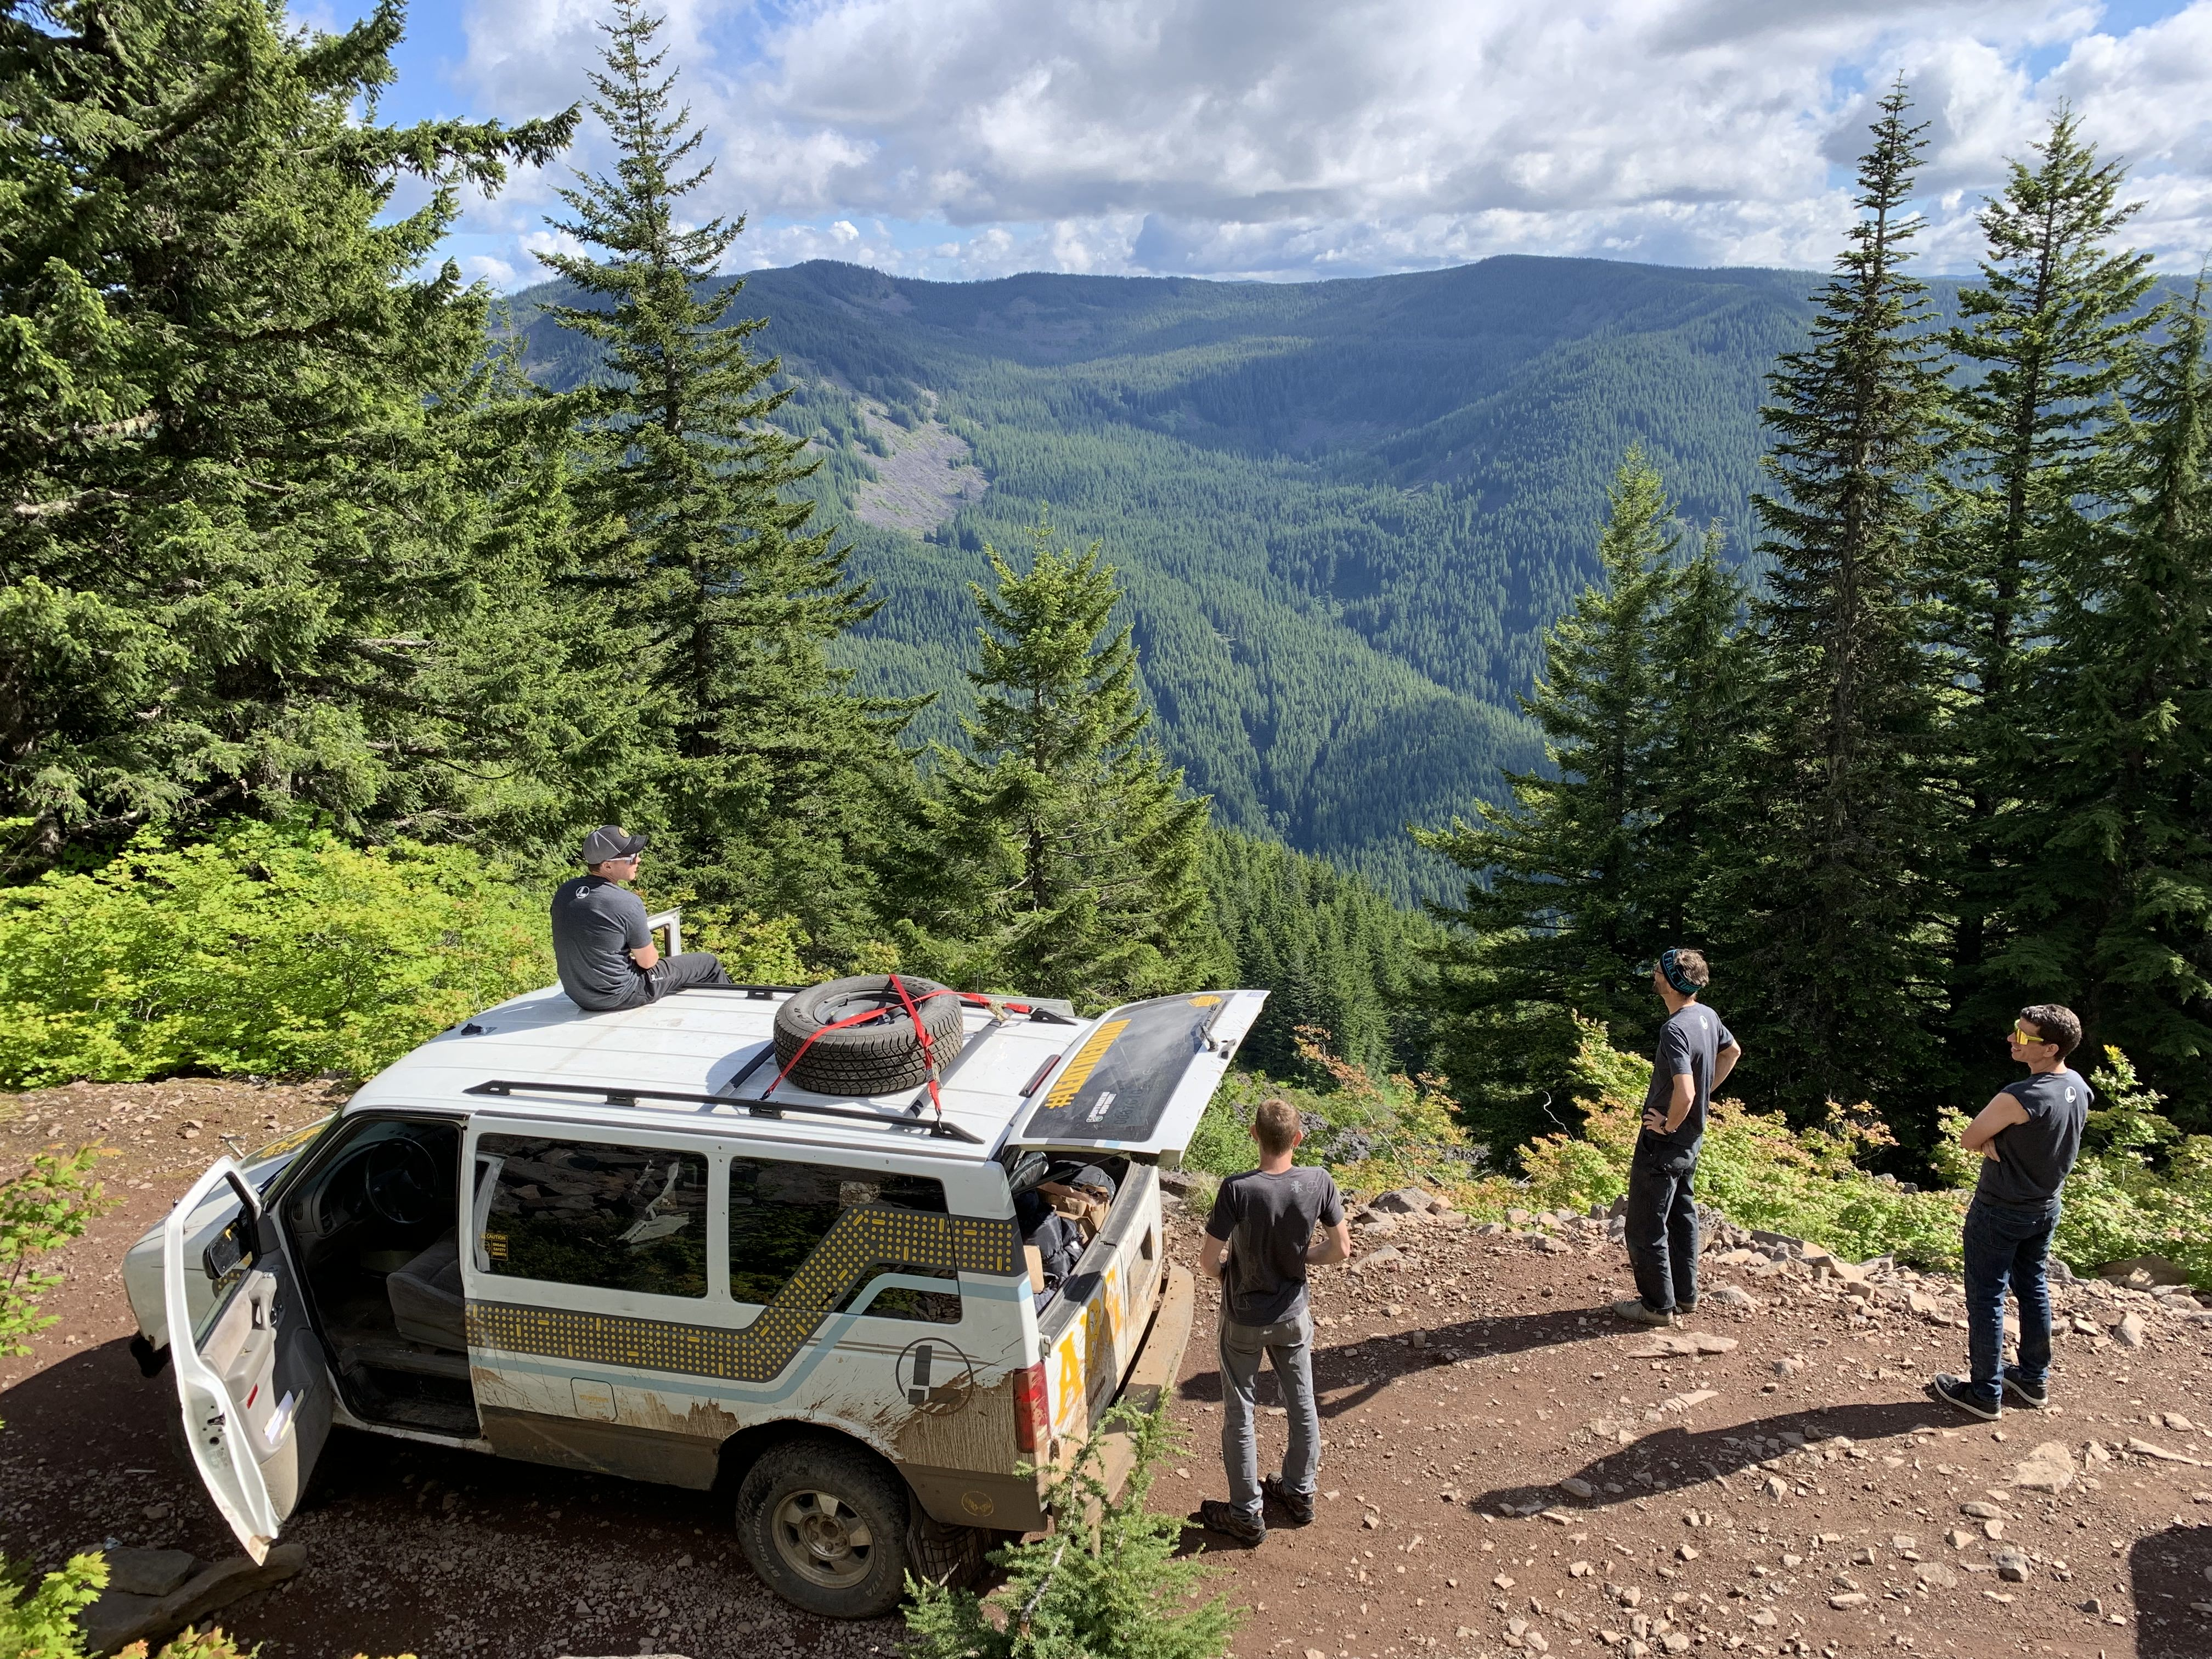 Leatherman van in the Oregon forest.